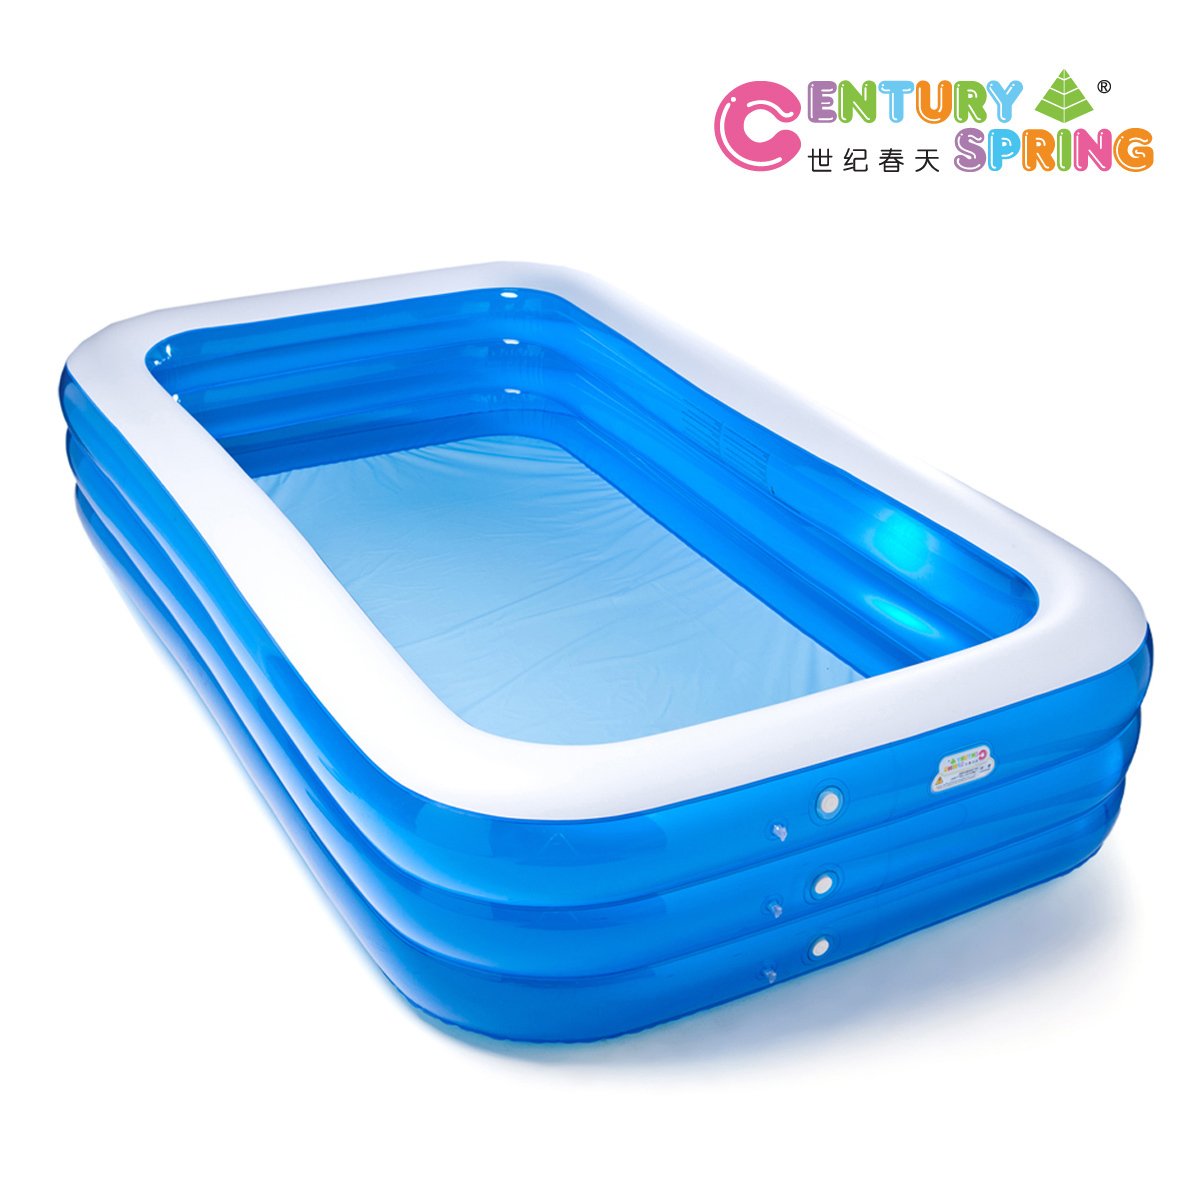 Adult extra large family swimming pool infant paddling for Large paddling pool